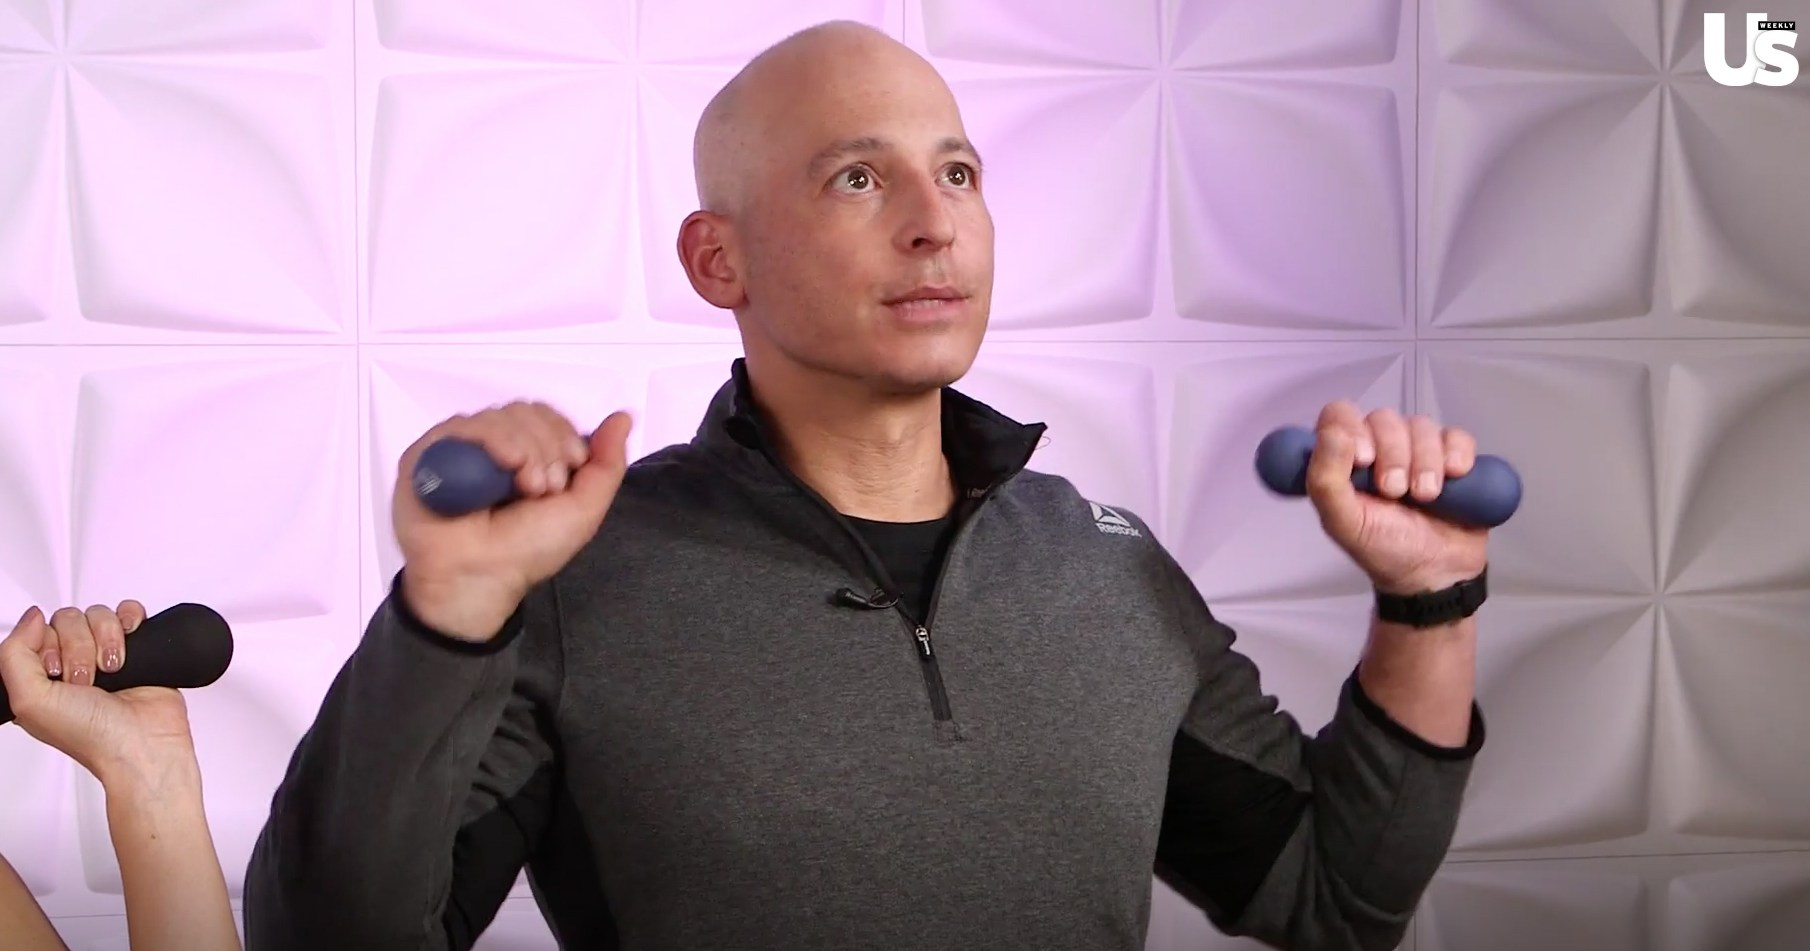 Ariana Grande's Trainer Harley Pasternak Takes Us Through an Arm Workout – Watch